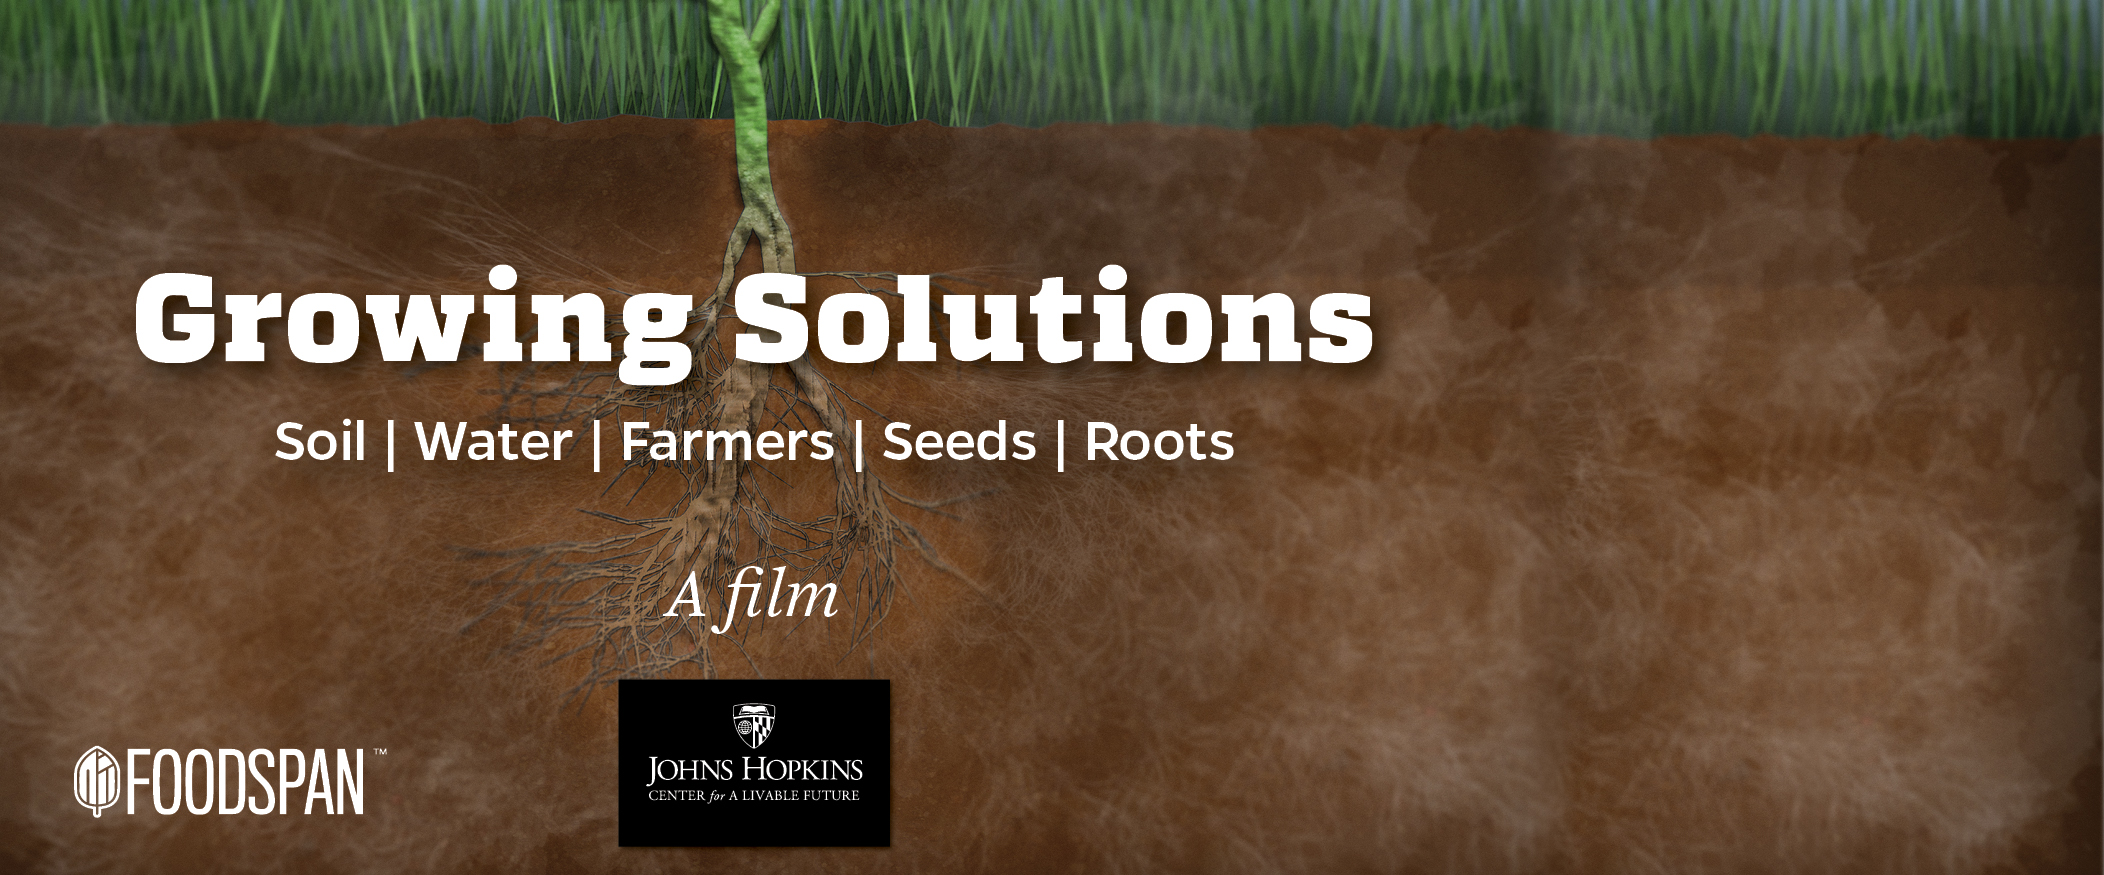 Growing Solution